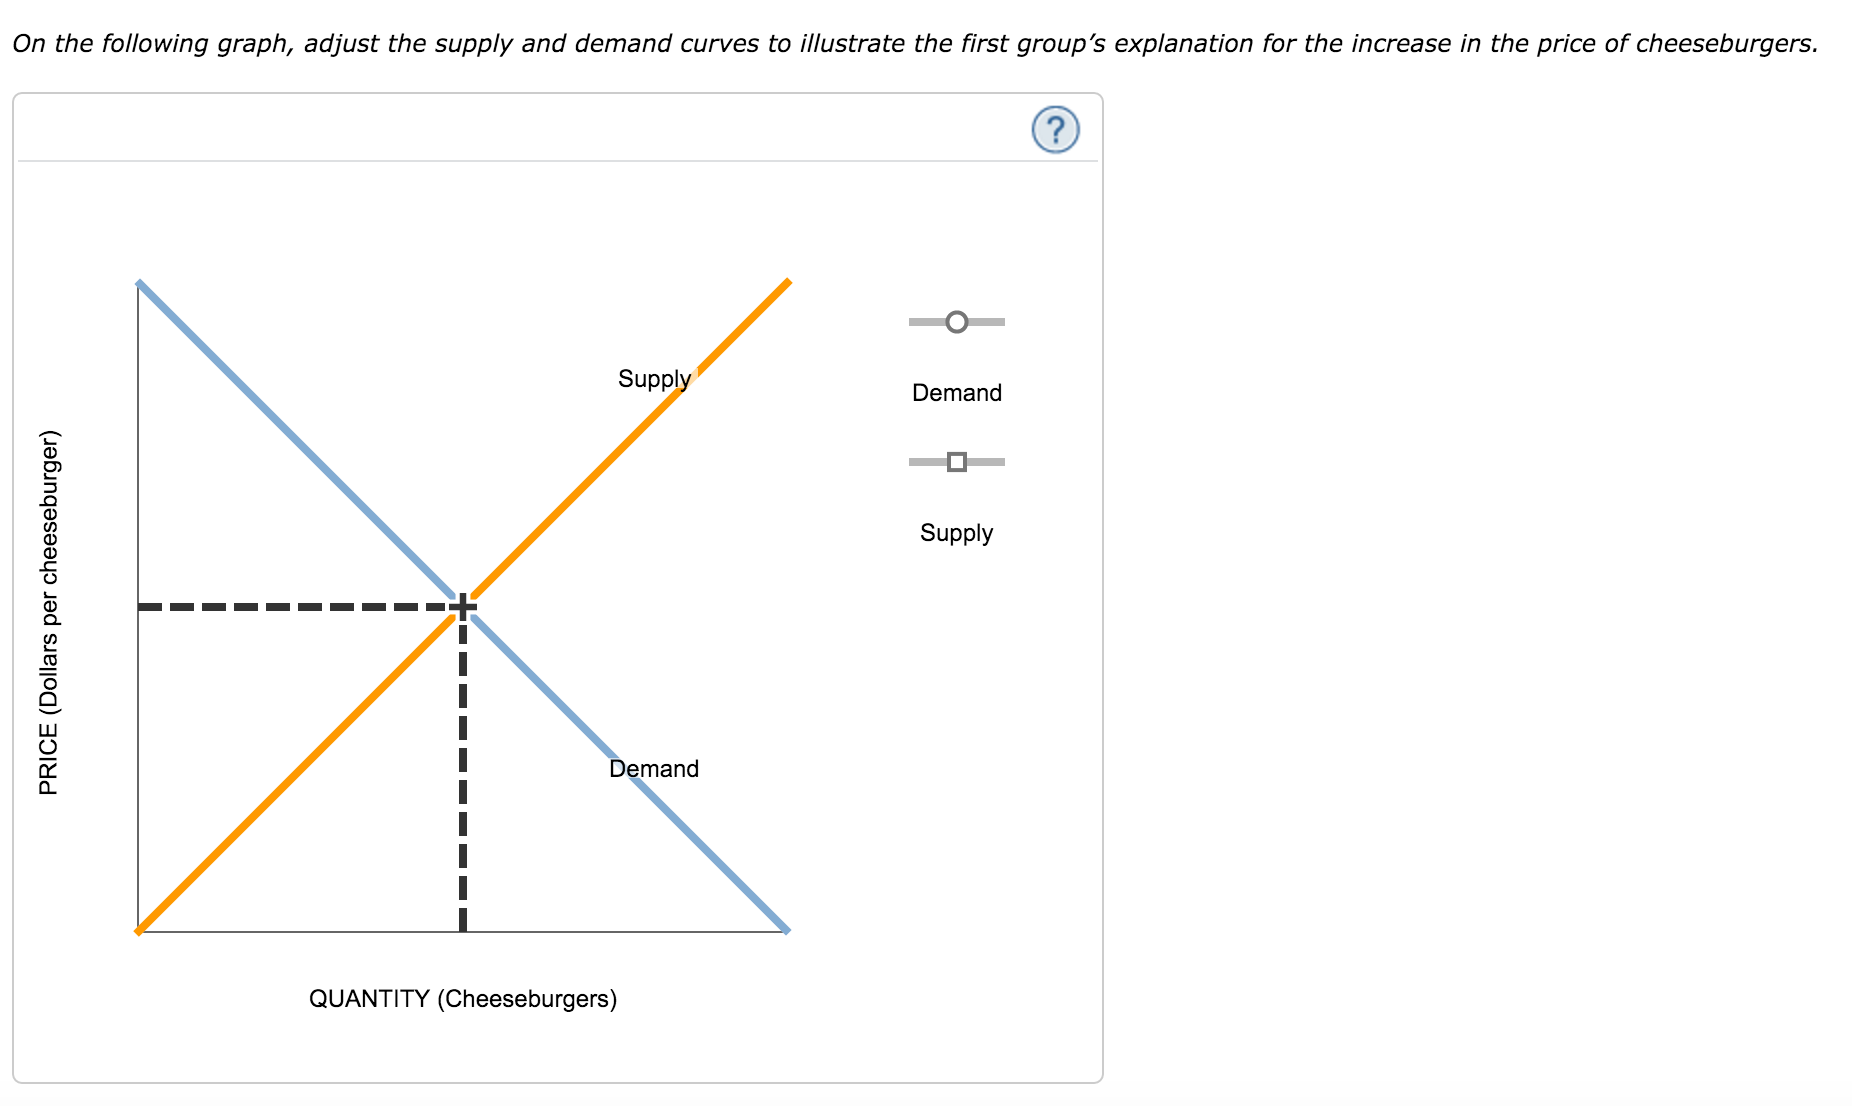 a leftward shift in the supply curve of product x will increase equilibrium price to a greater exten